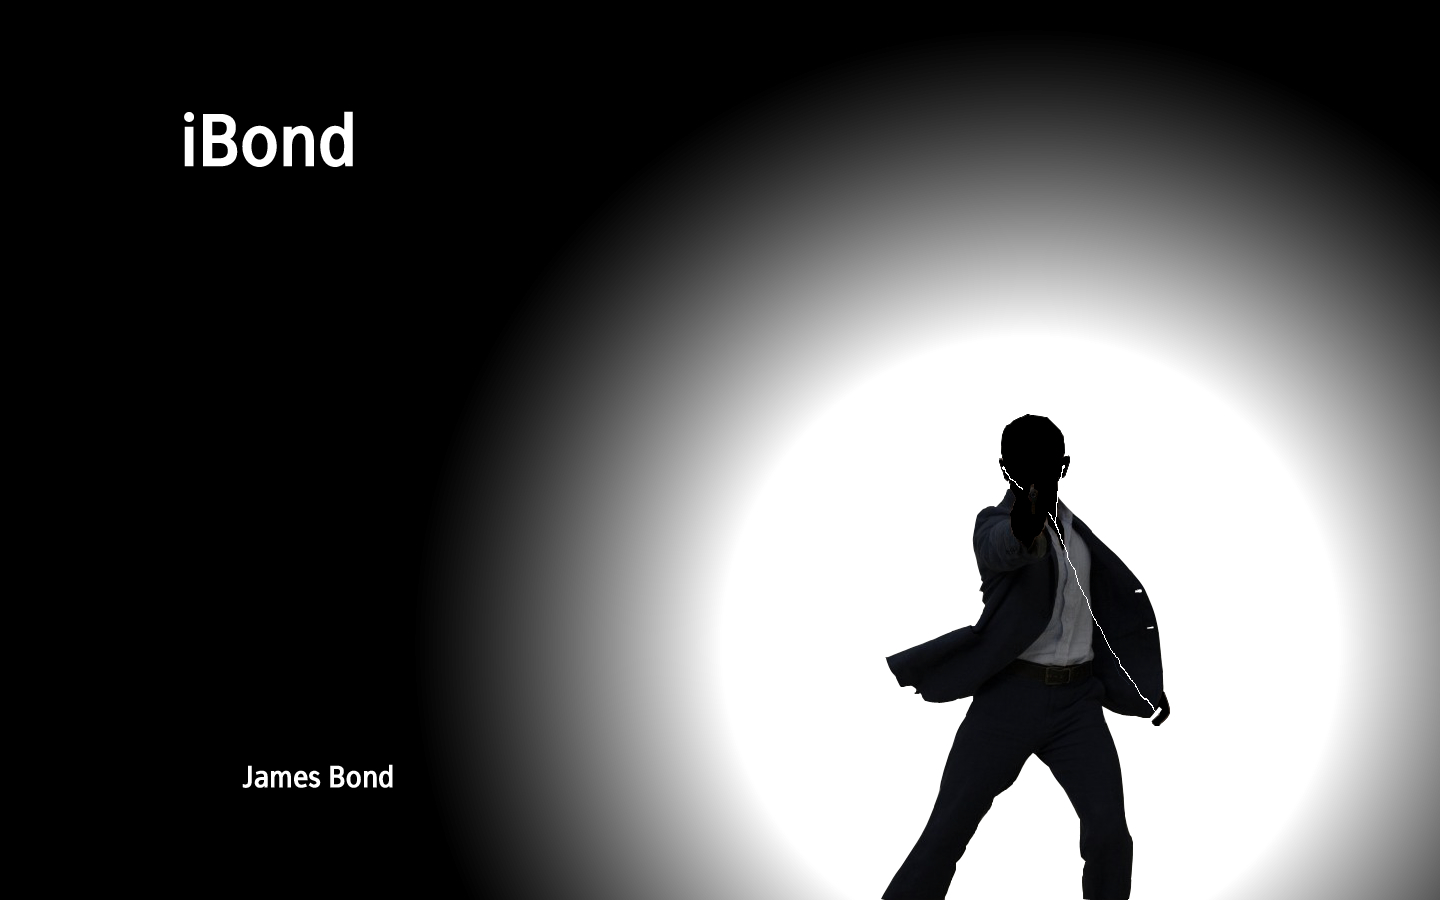 007 background image - Widescreen Wallpaper Downloads James Bond 007 Ipod Style Background